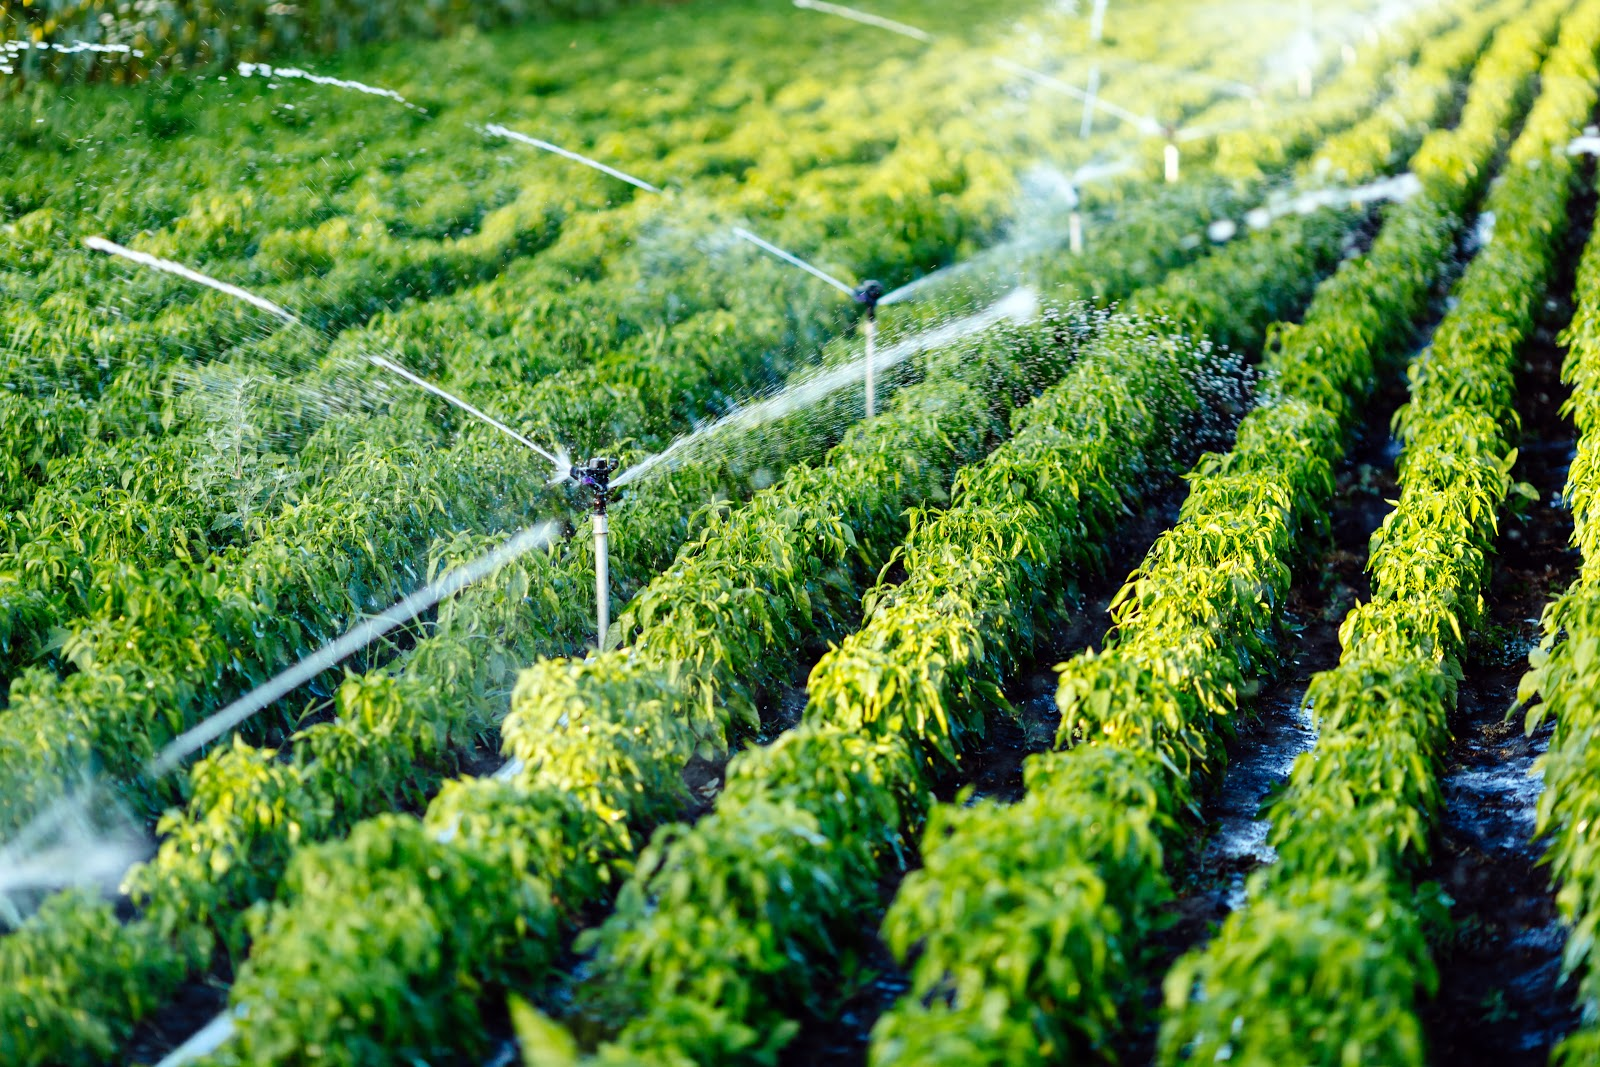 It is estimated that 70% of the world's water footprint is related to what we eat, according to the Food and Agriculture Organization of the United Nations (FAO)